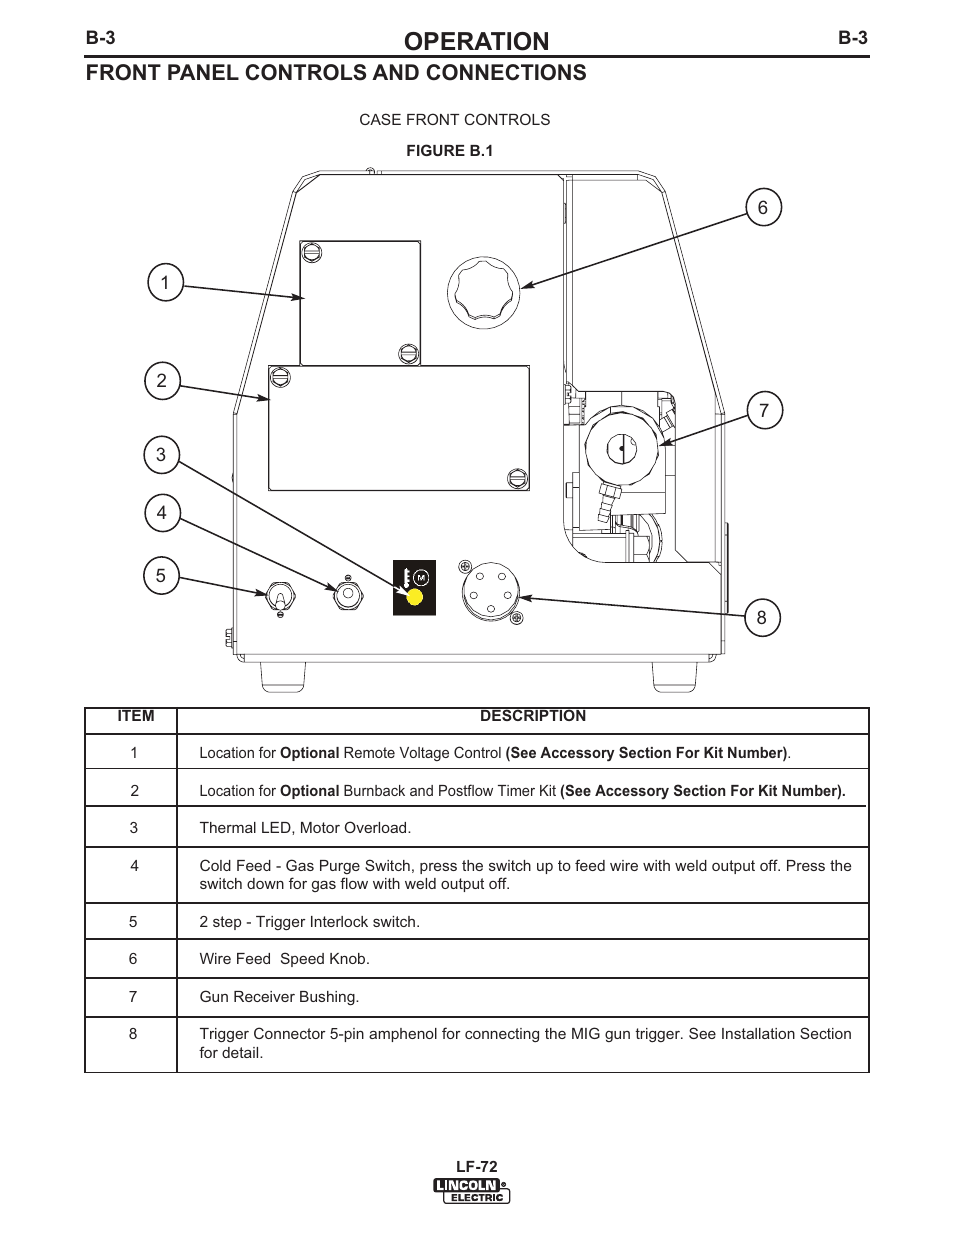 medium resolution of operation front panel controls and connections lincoln electric im847 lf 72 wire feeder